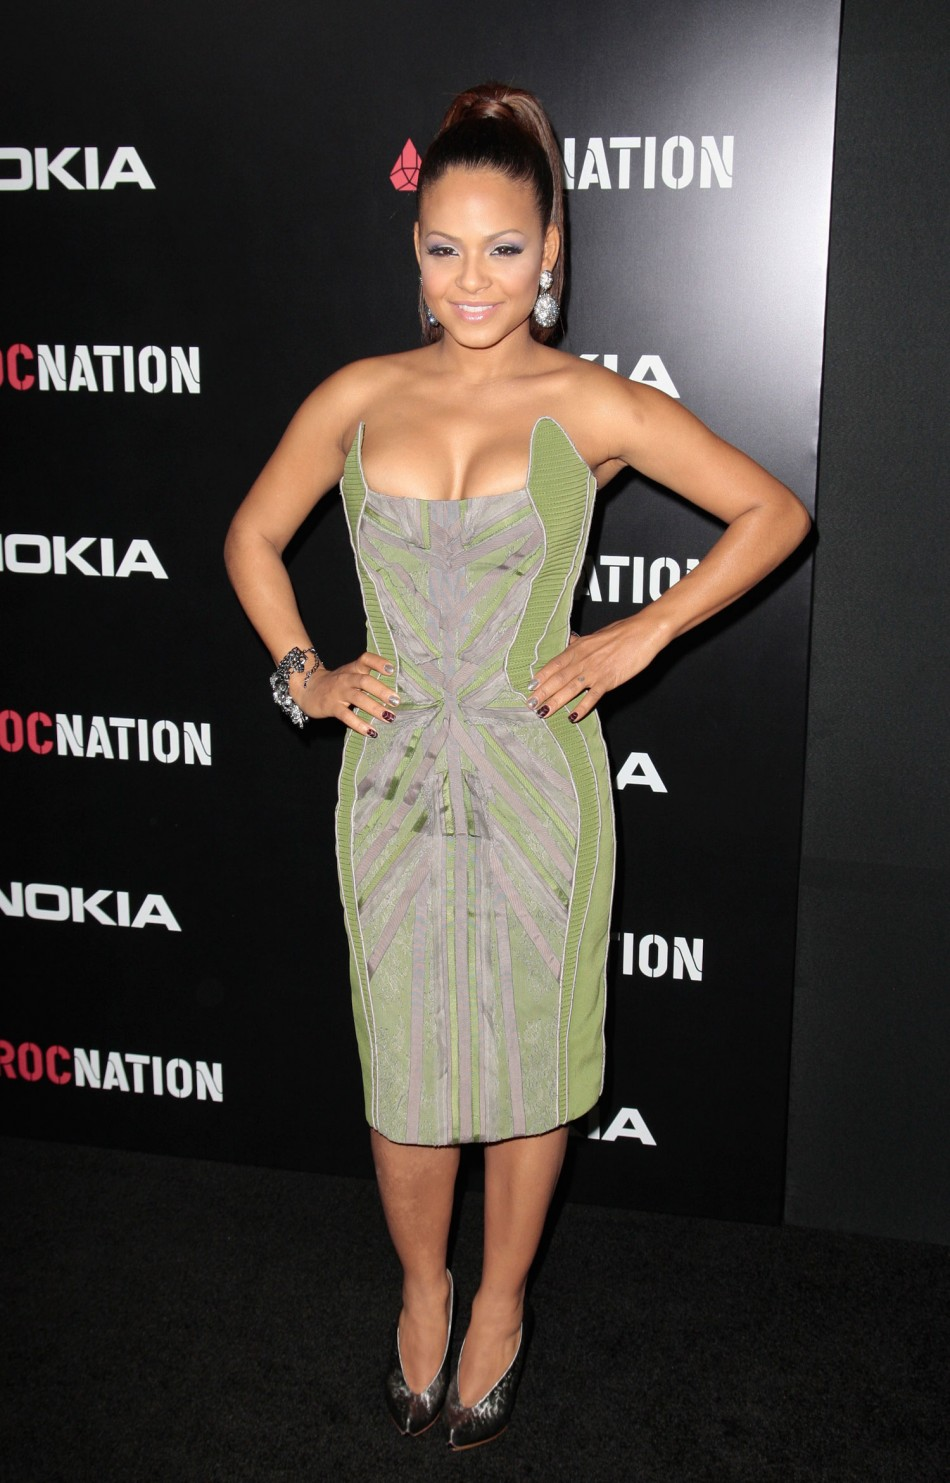 Actress and singer Christina Milian